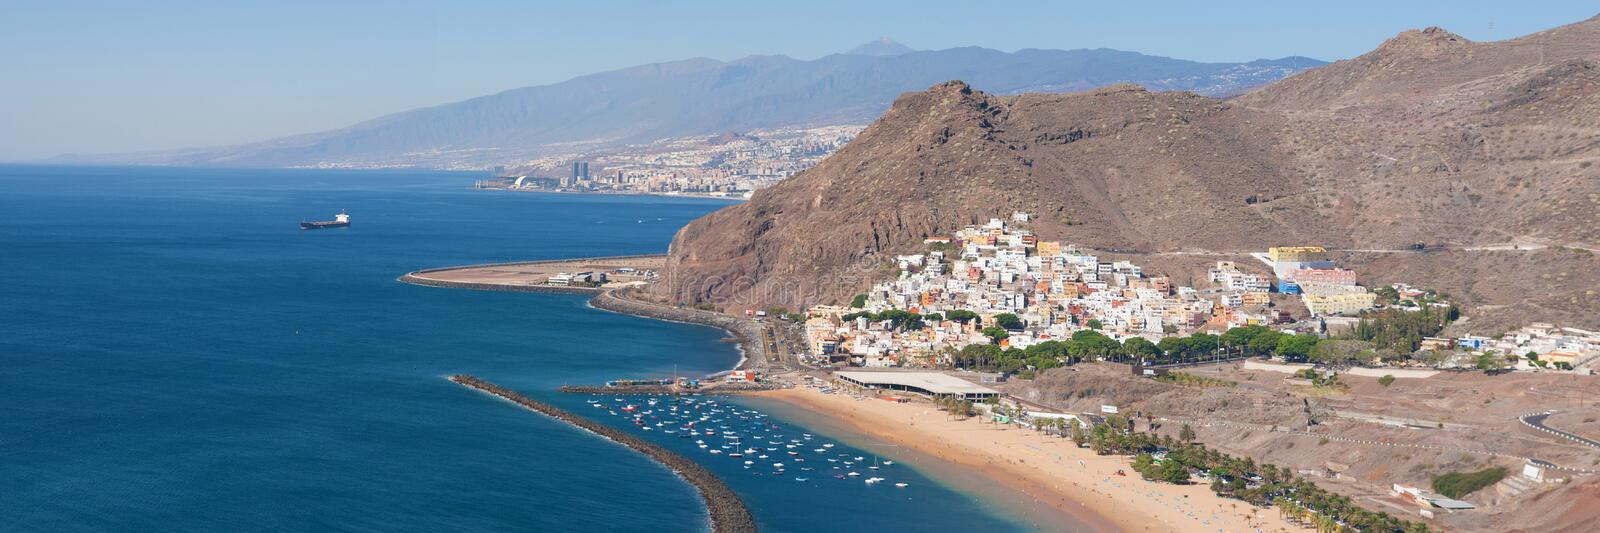 Santa Cruz de Tenerife and San Andres. Panorama of Santa Cruz de Tenerife and San Andres in Tenerife, Canary Islands royalty free stock photos